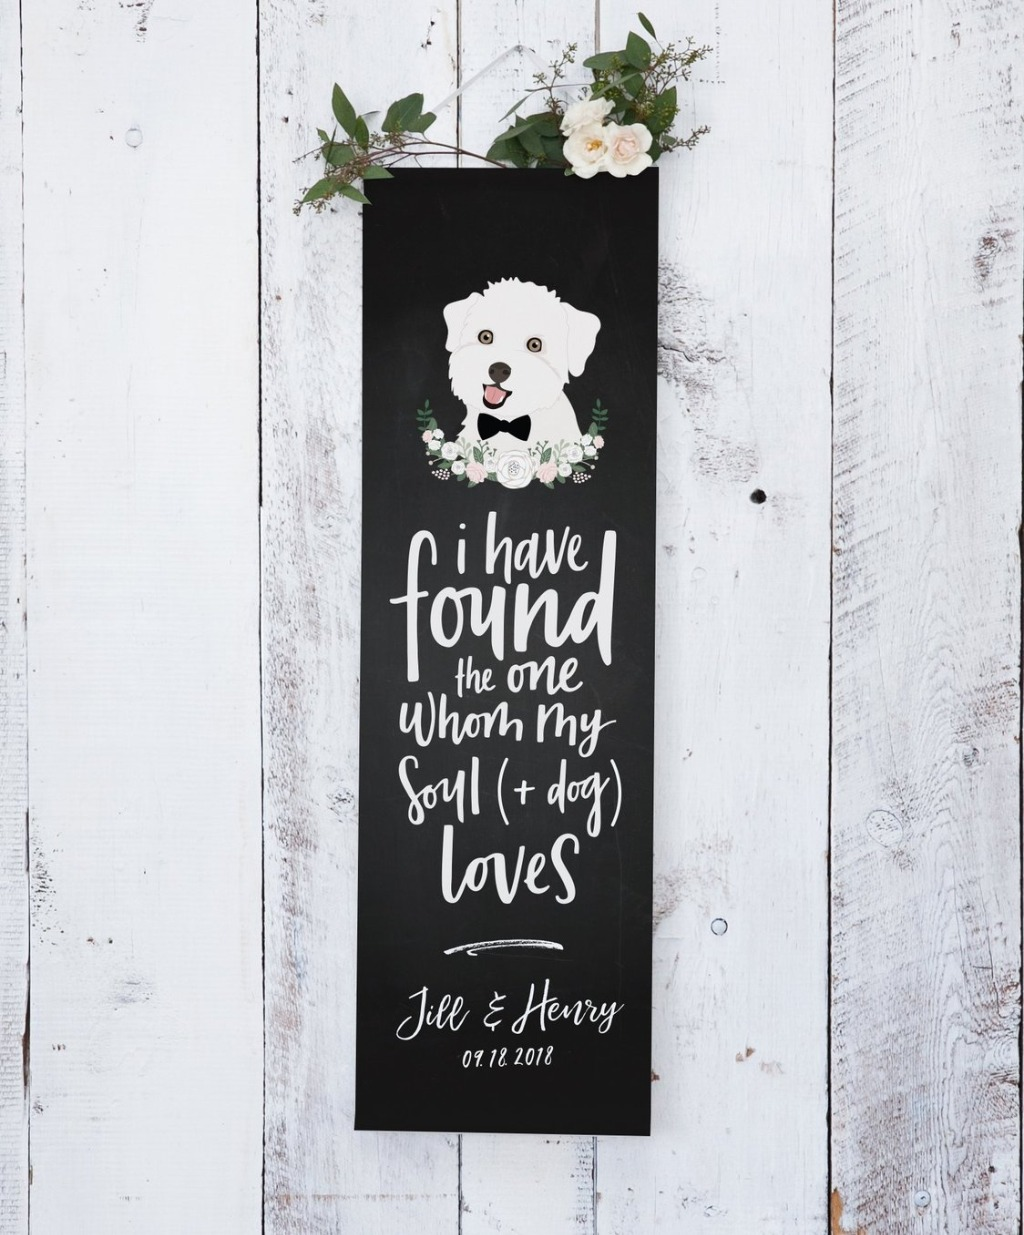 This Chalkboard Wedding Banner with Pet Portrait from Miss Design Berry is the BEST wedding decor you can possibly pick up for your